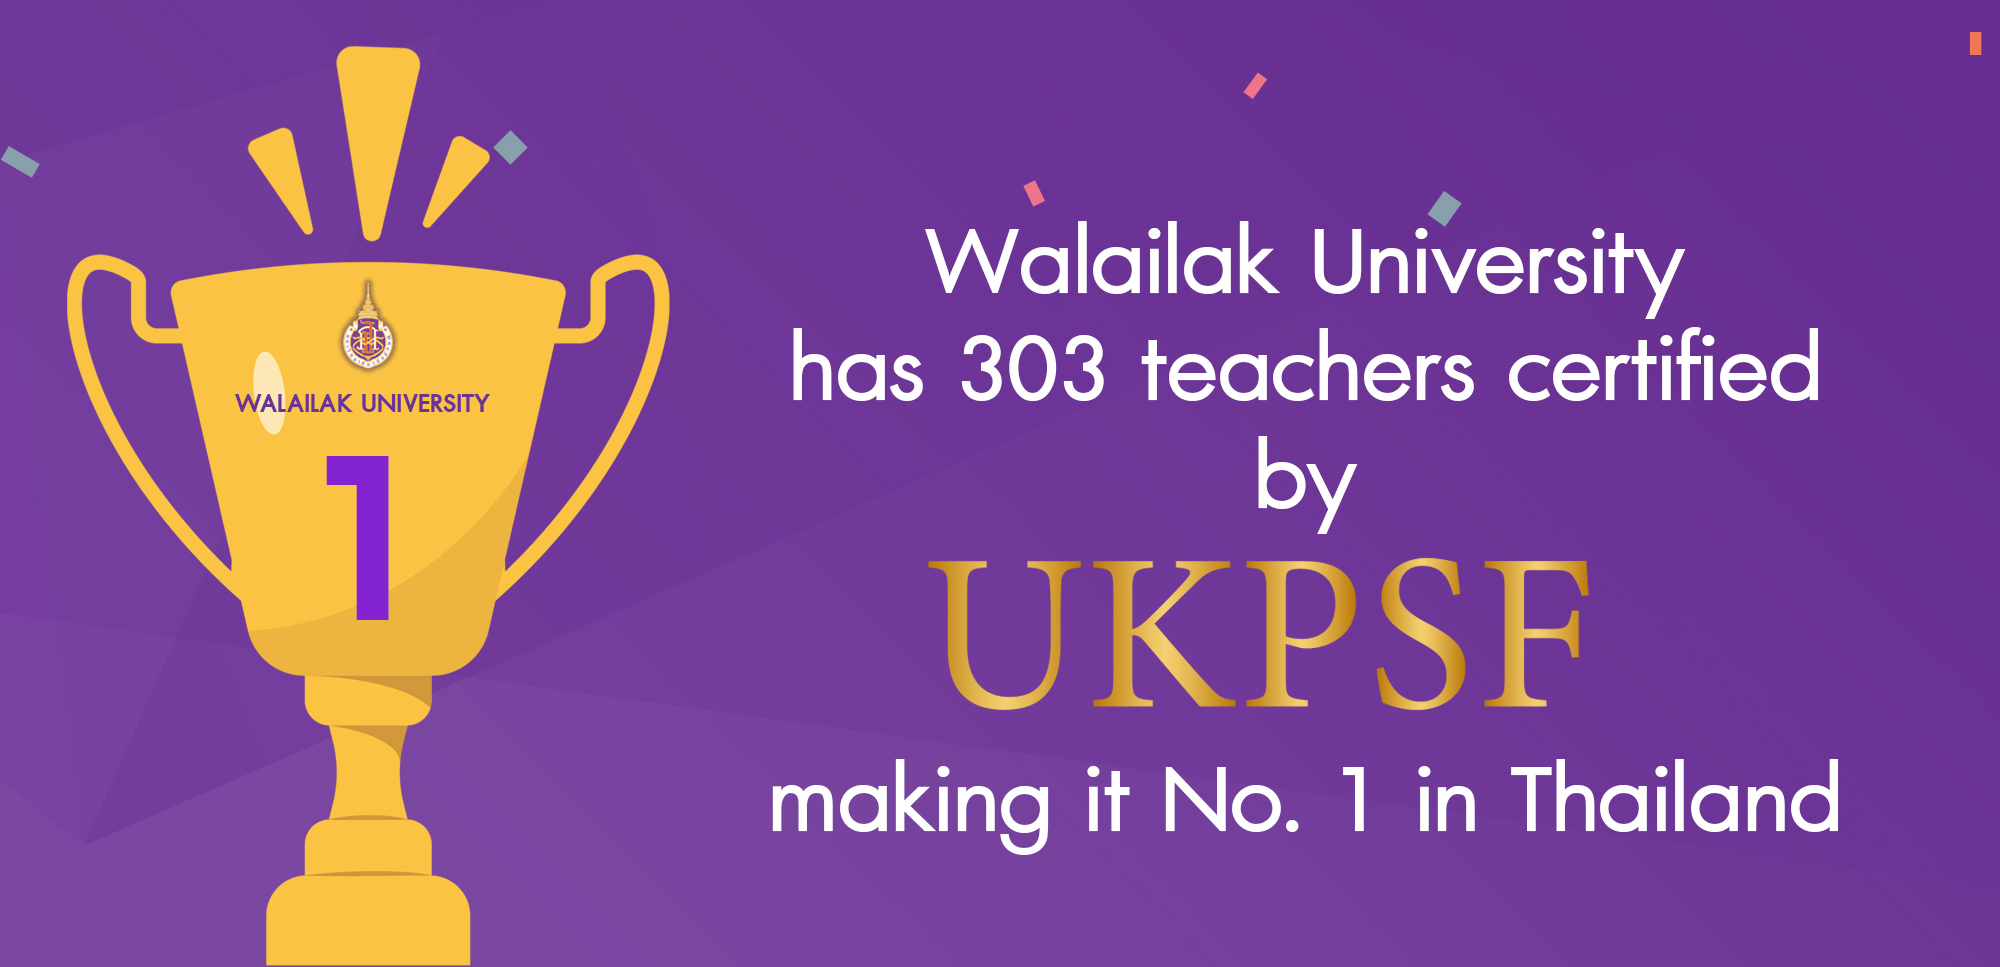 Walailak University has 303 teachers certified by UKPSF, making it No. 1 in Thailand